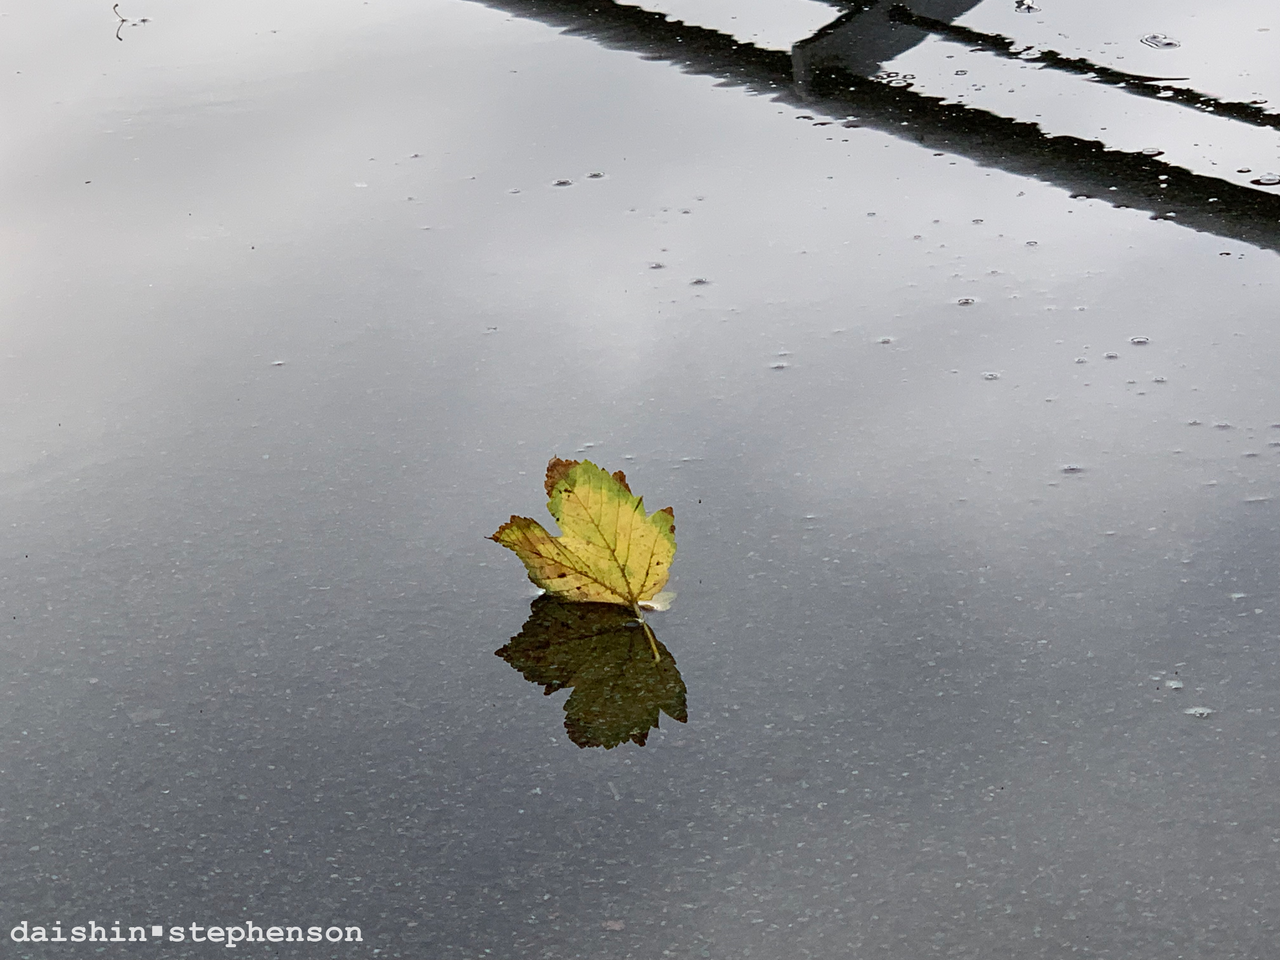 leaf standing up in puddle with its own mirrored reflection